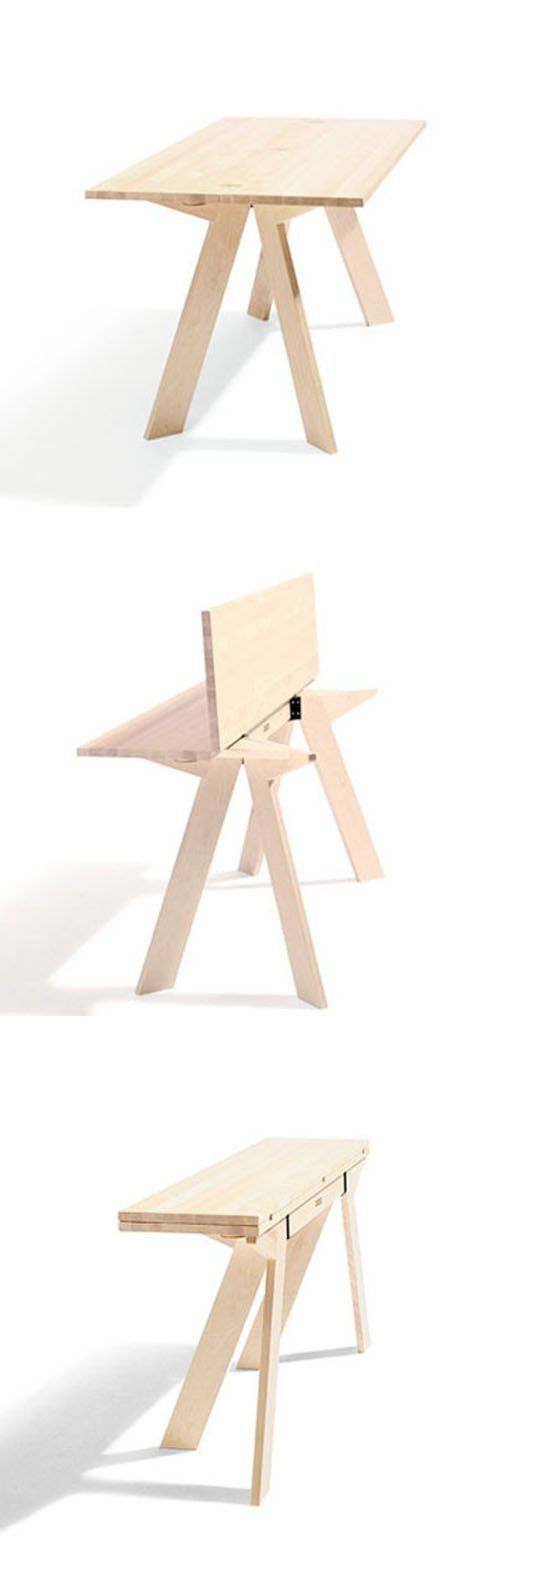 Folding expanding tables furniture design folding furniture and smart furniture - Smart furniture for small spaces handy solutions ...